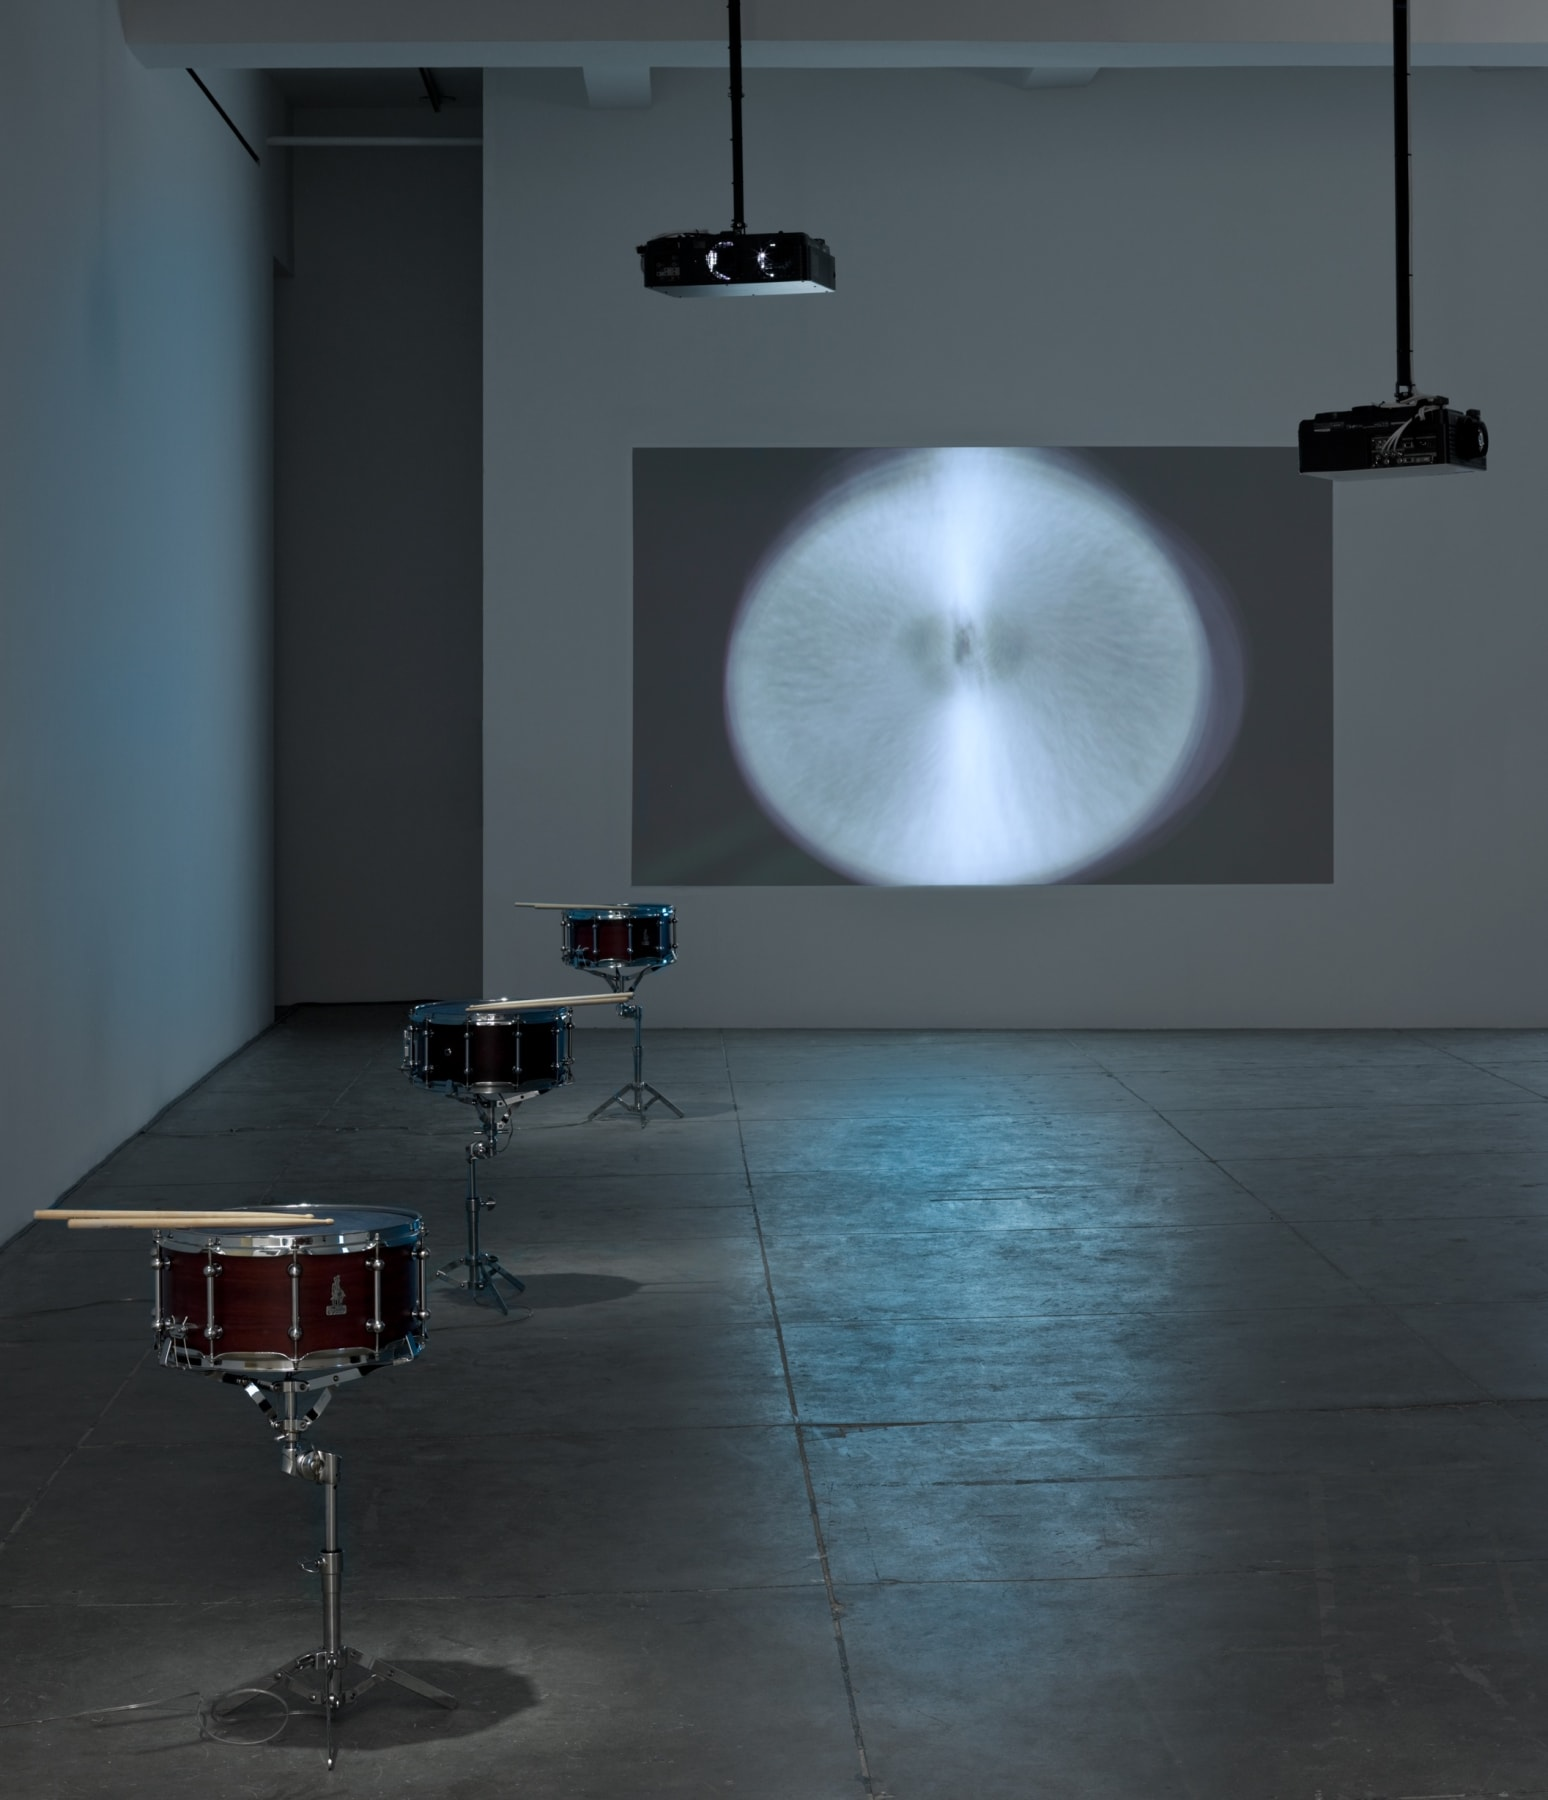 A cymbal with a motion blur is projected onto a wall. 2 black projectors are suspended from the ceiling. 3 snare kits sit in a line on the left side of the room.